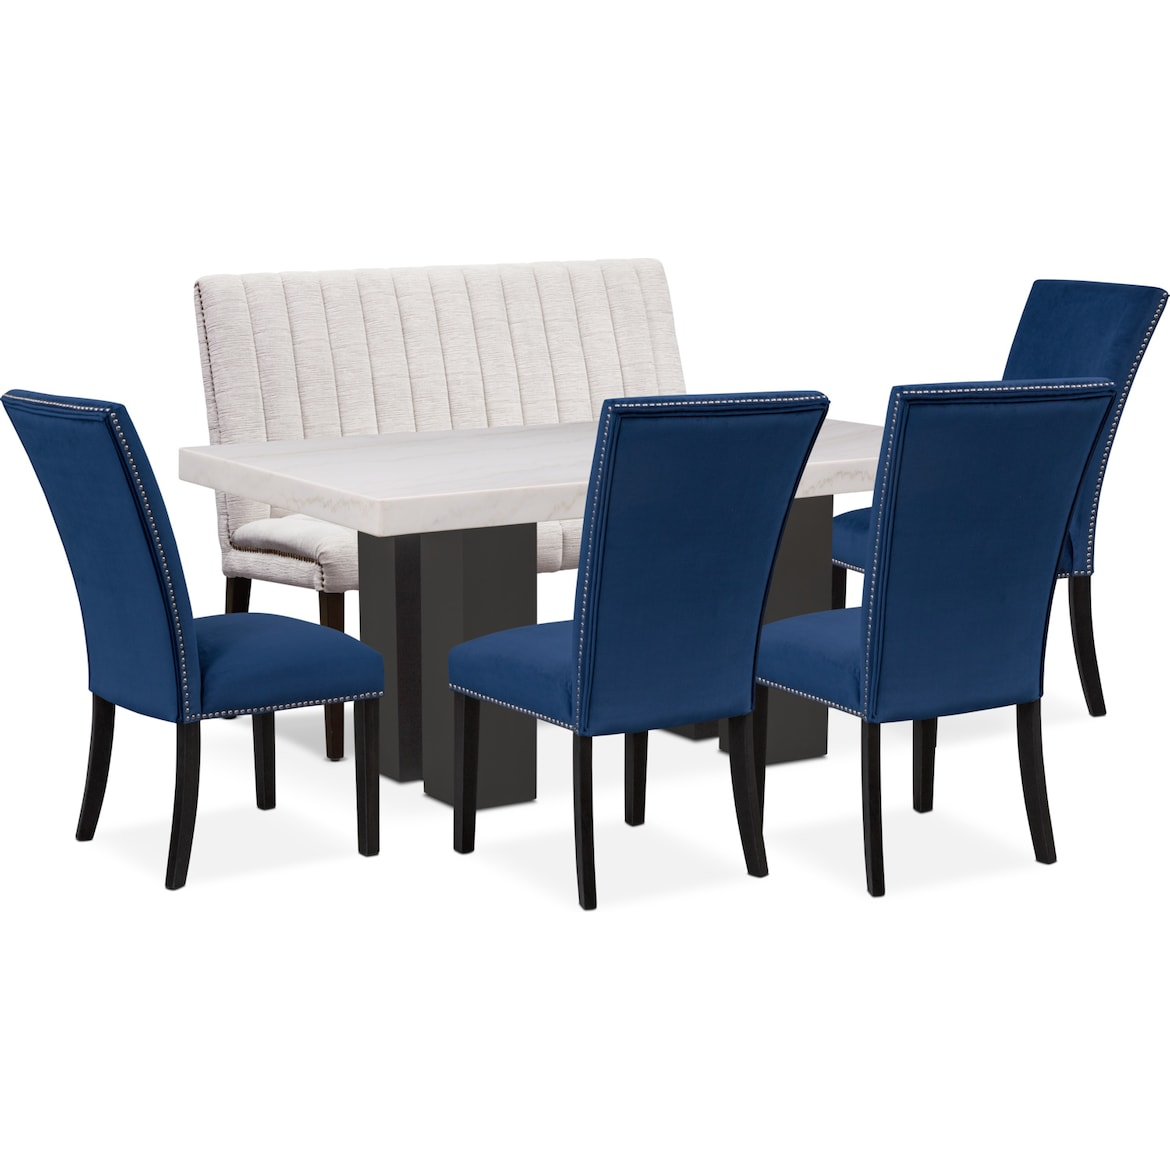 Astounding Artemis Marble Dining Table 4 Upholstered Dining Chairs And Bench Ibusinesslaw Wood Chair Design Ideas Ibusinesslaworg